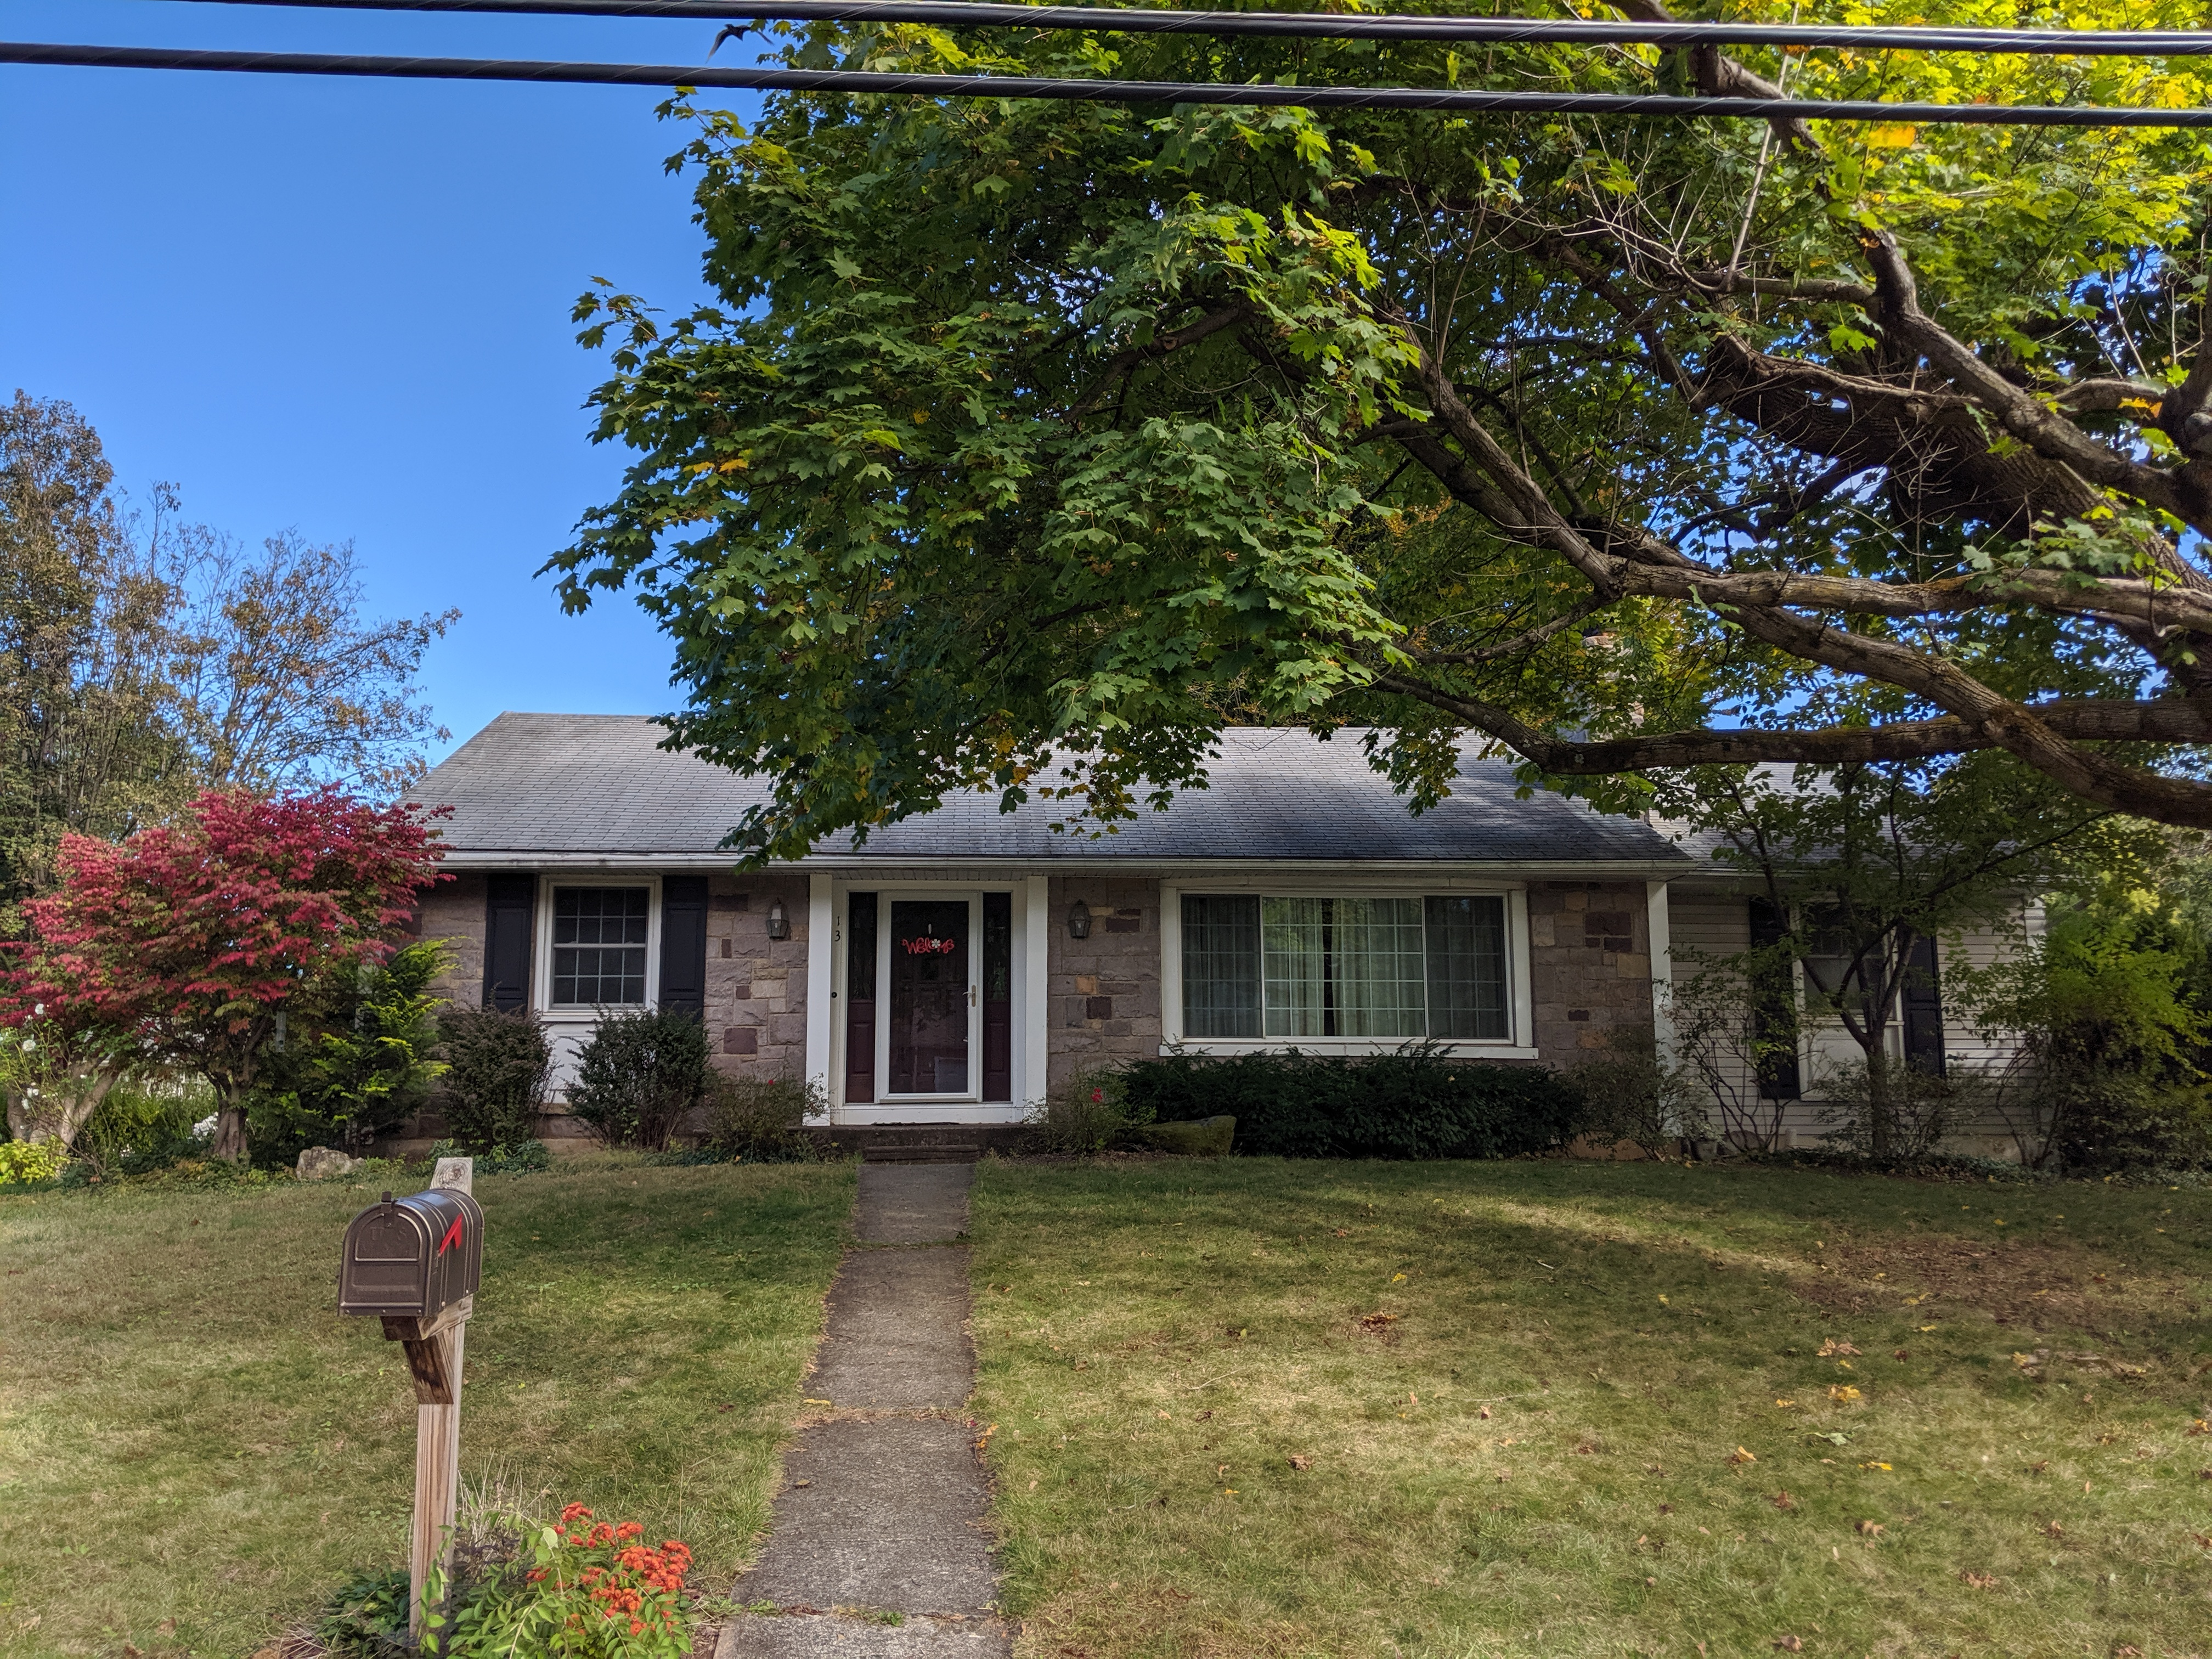 Easton – 3 Bedroom 3 Bath $249,900